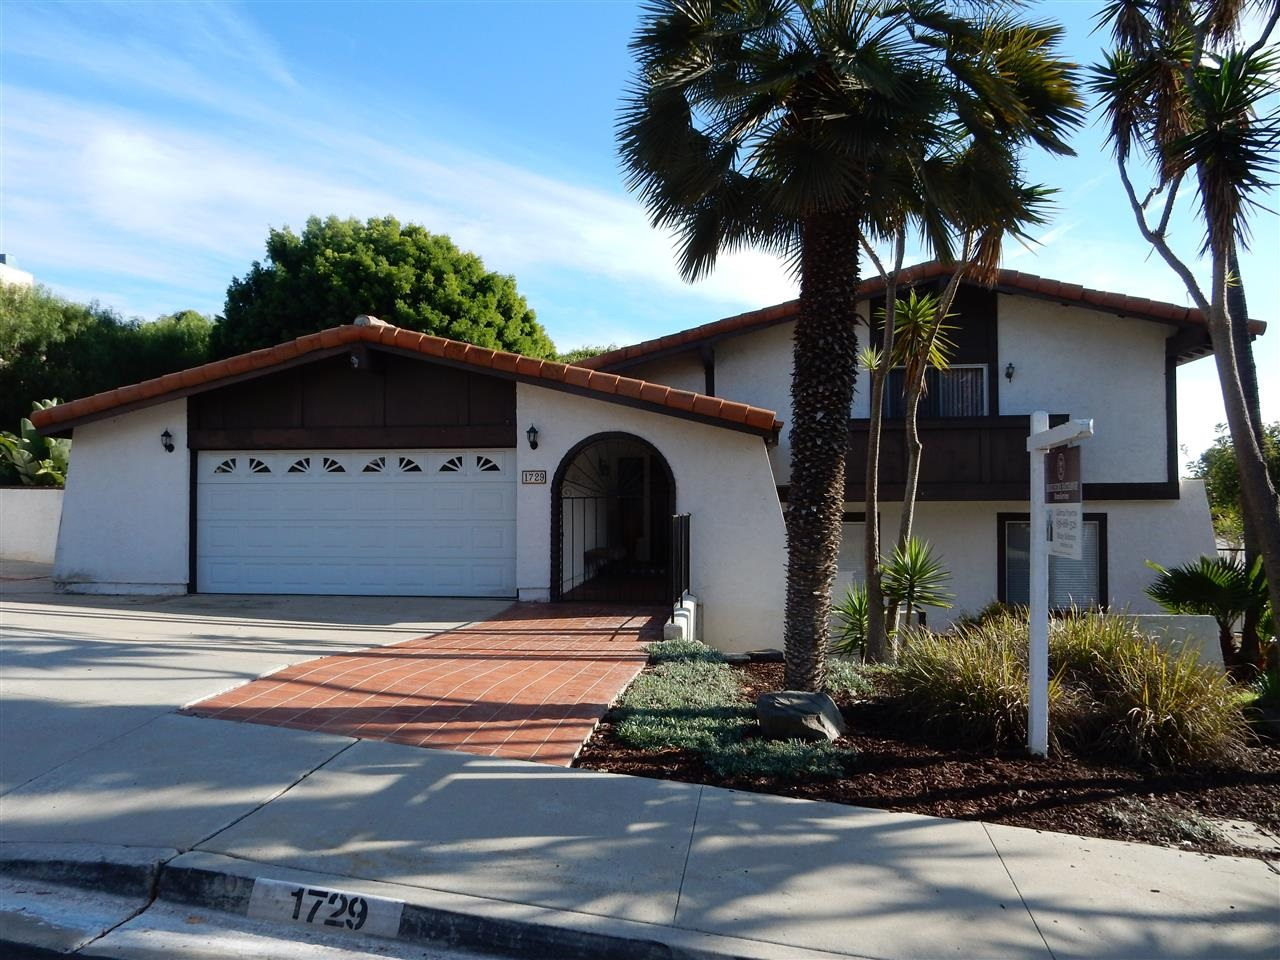 Main Photo: CARLSBAD WEST House for sale : 4 bedrooms : 1729 Calavo Court in Carlsbad